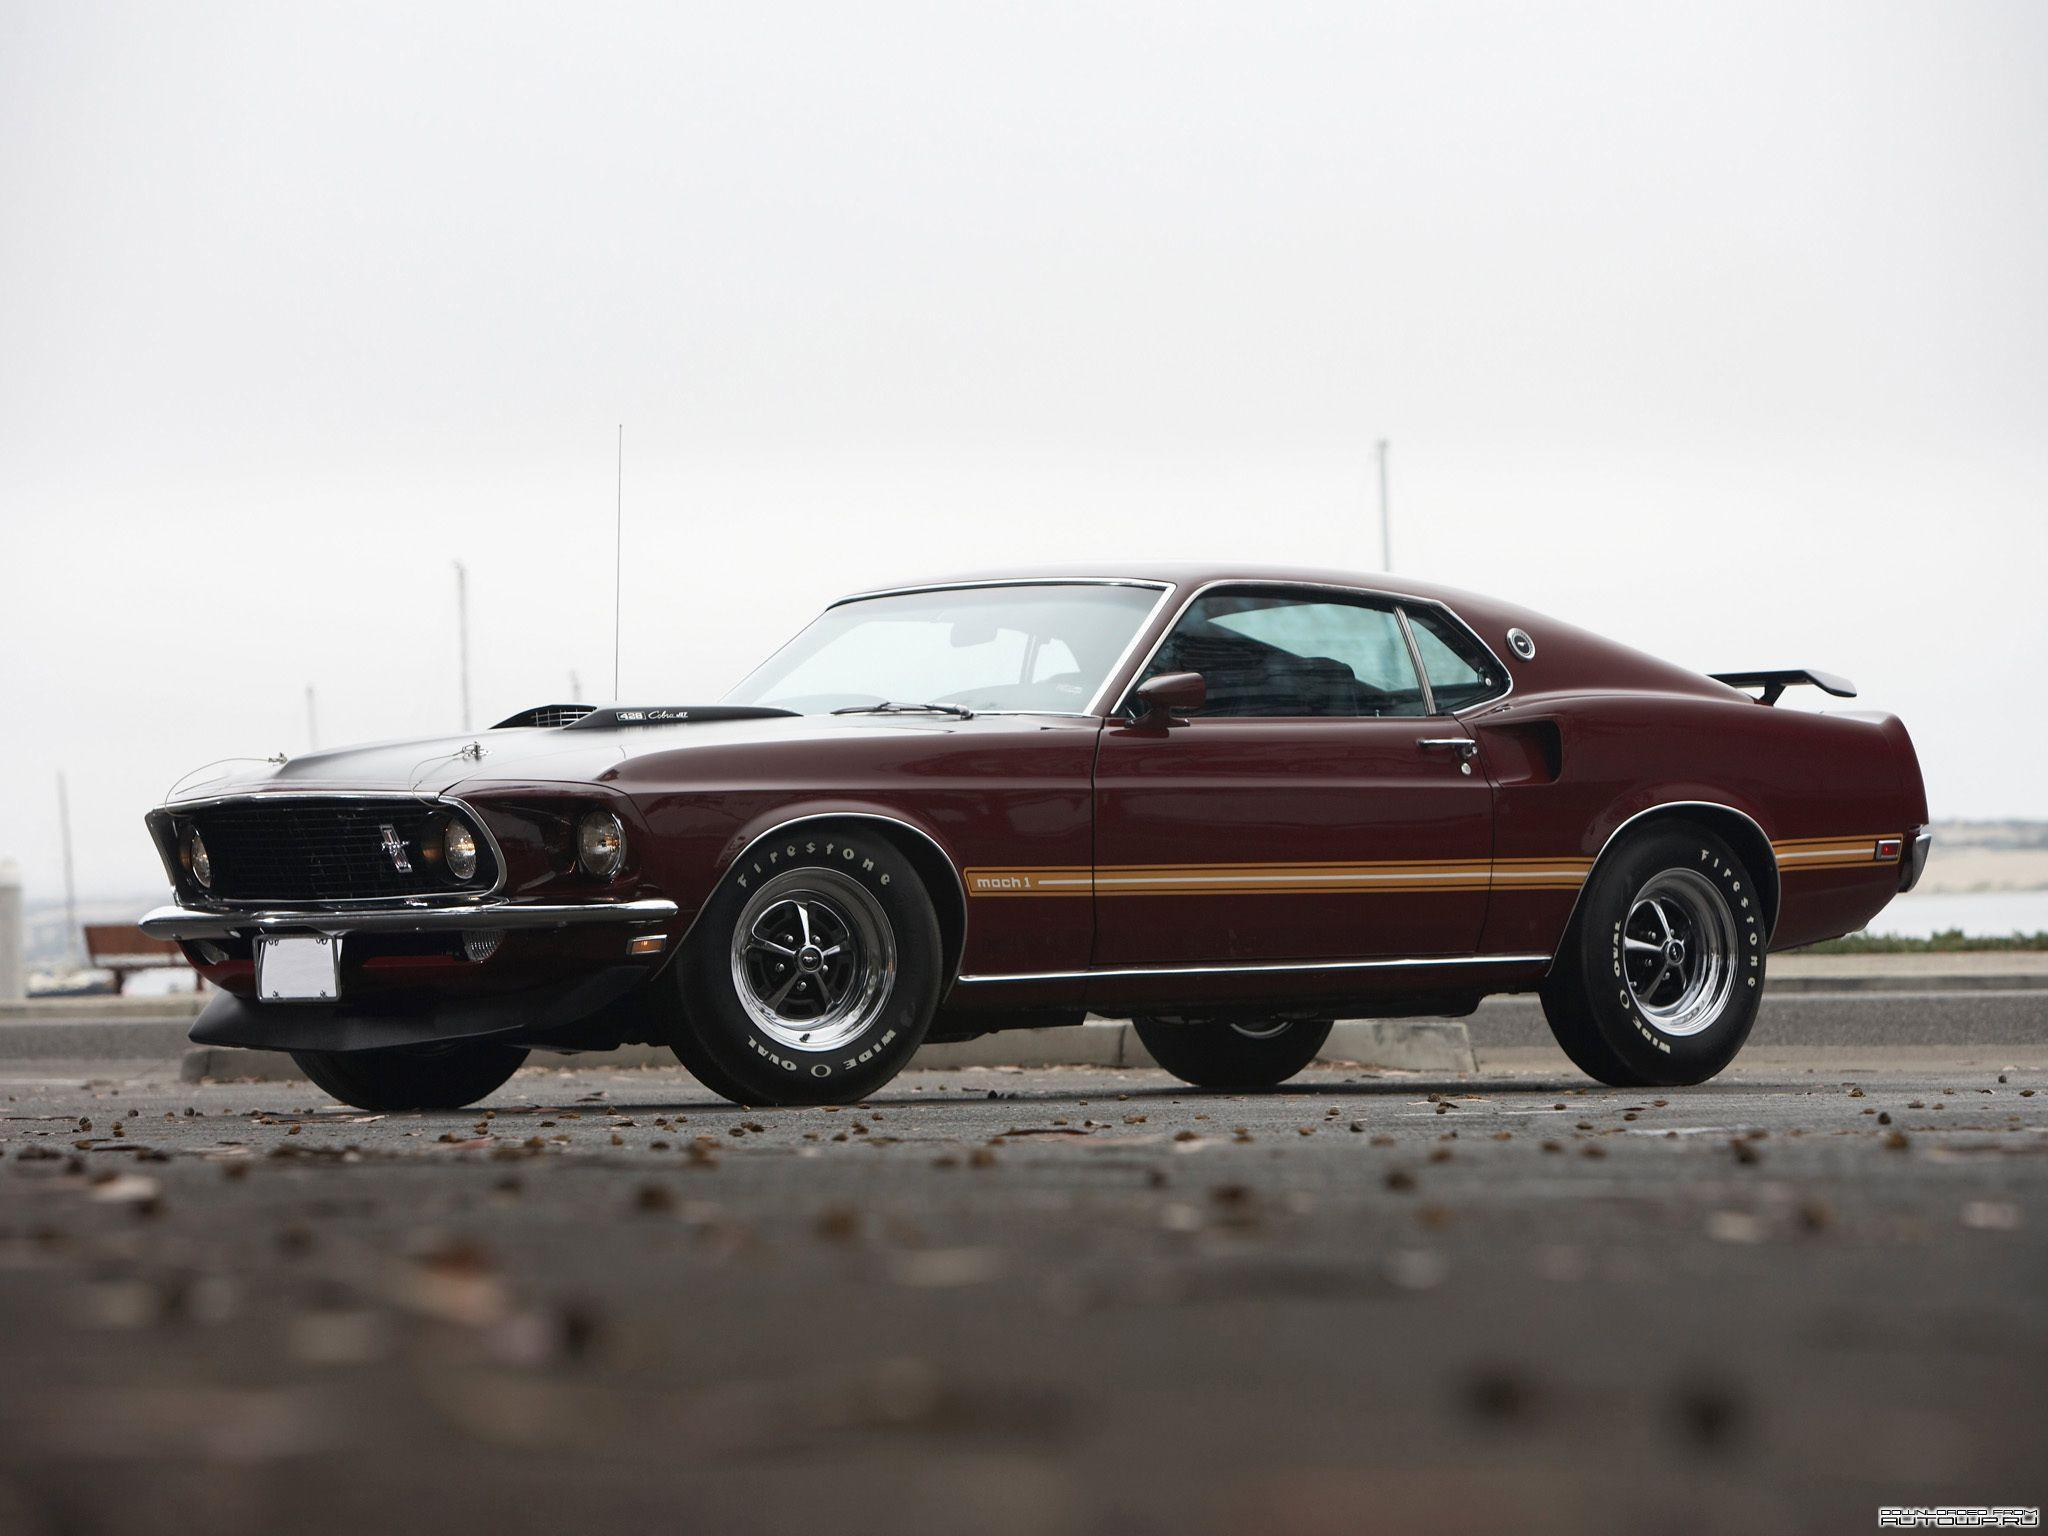 Ford Mustang MACH 1 1969 » Cars » OldtimeWallpapers